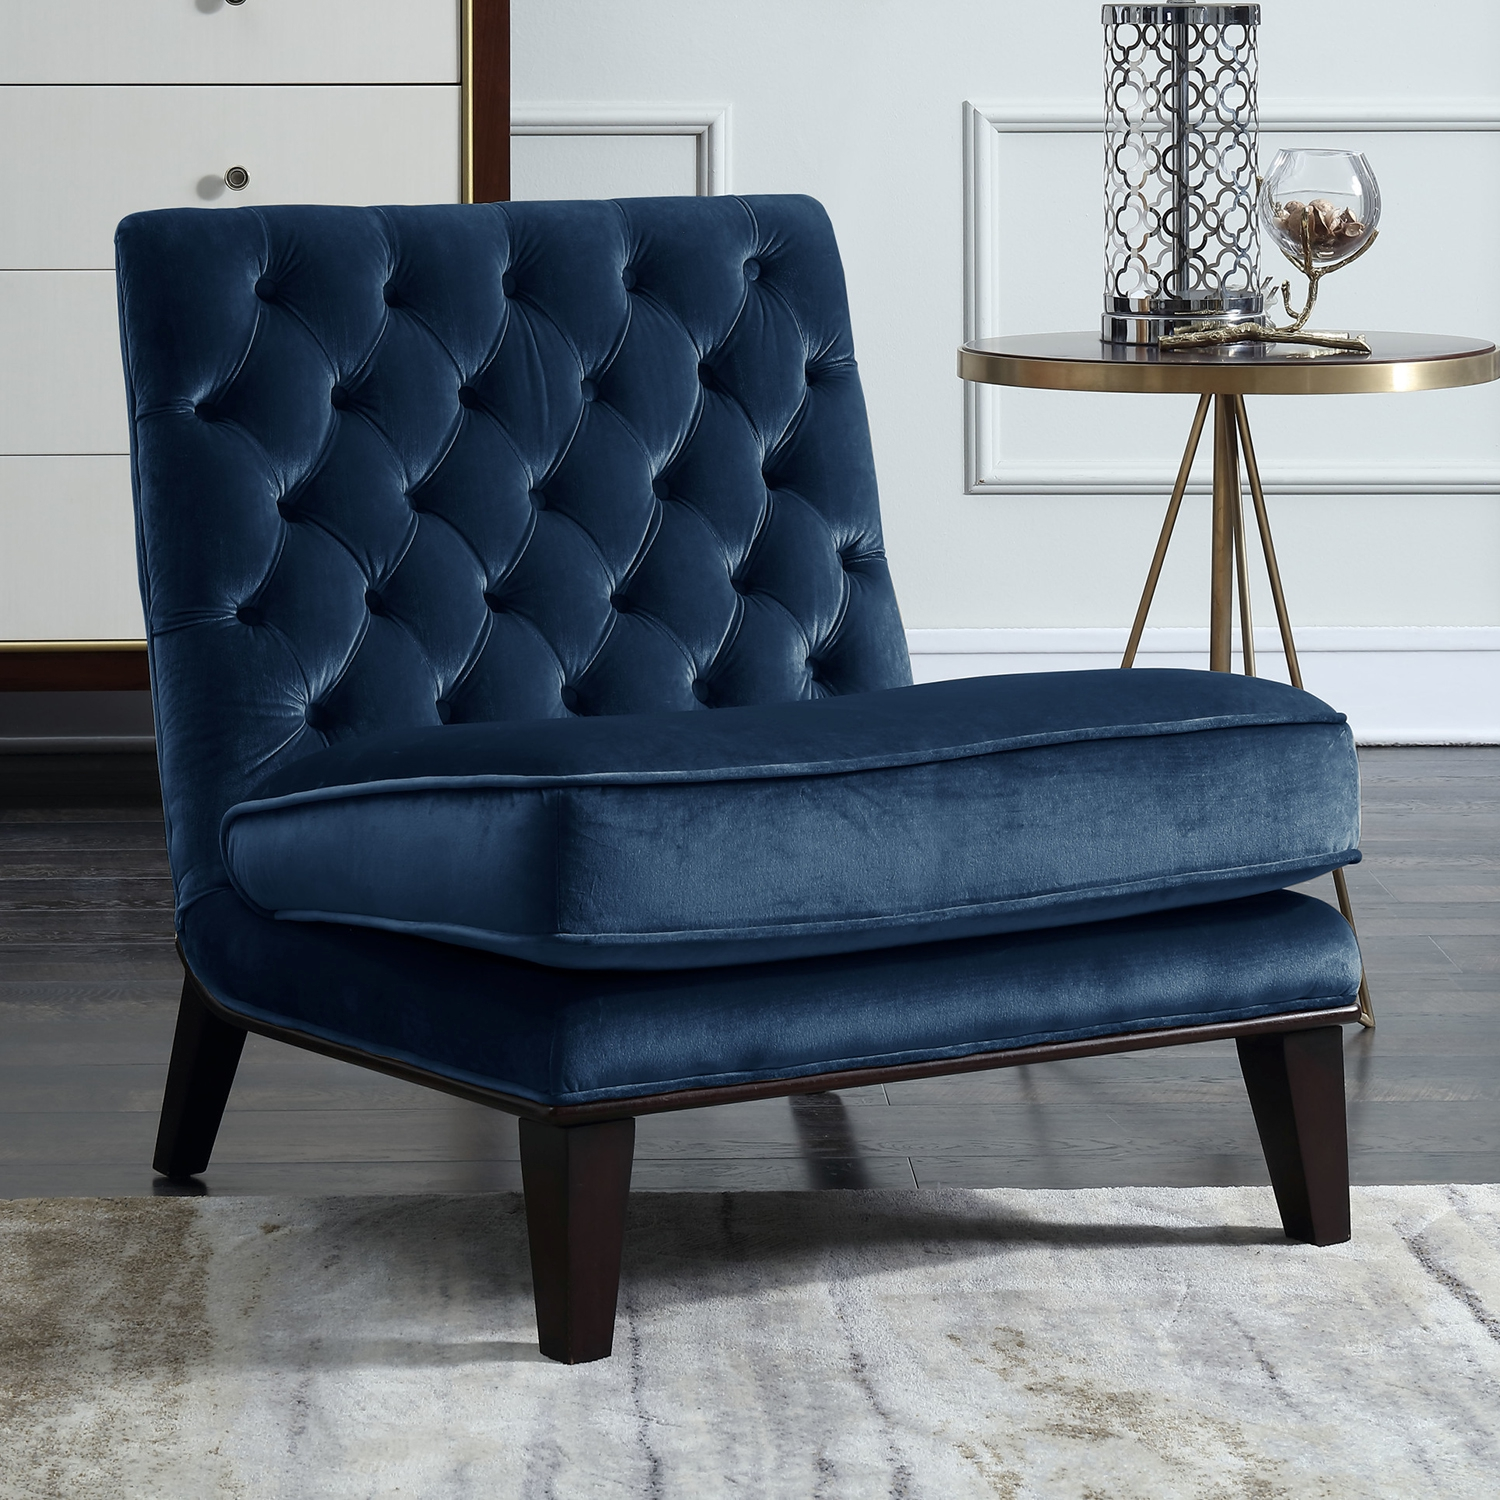 Velvet Slipper Chair Achilles Accent Slipper Chair In Tufted Navy Velvet By Chic Home